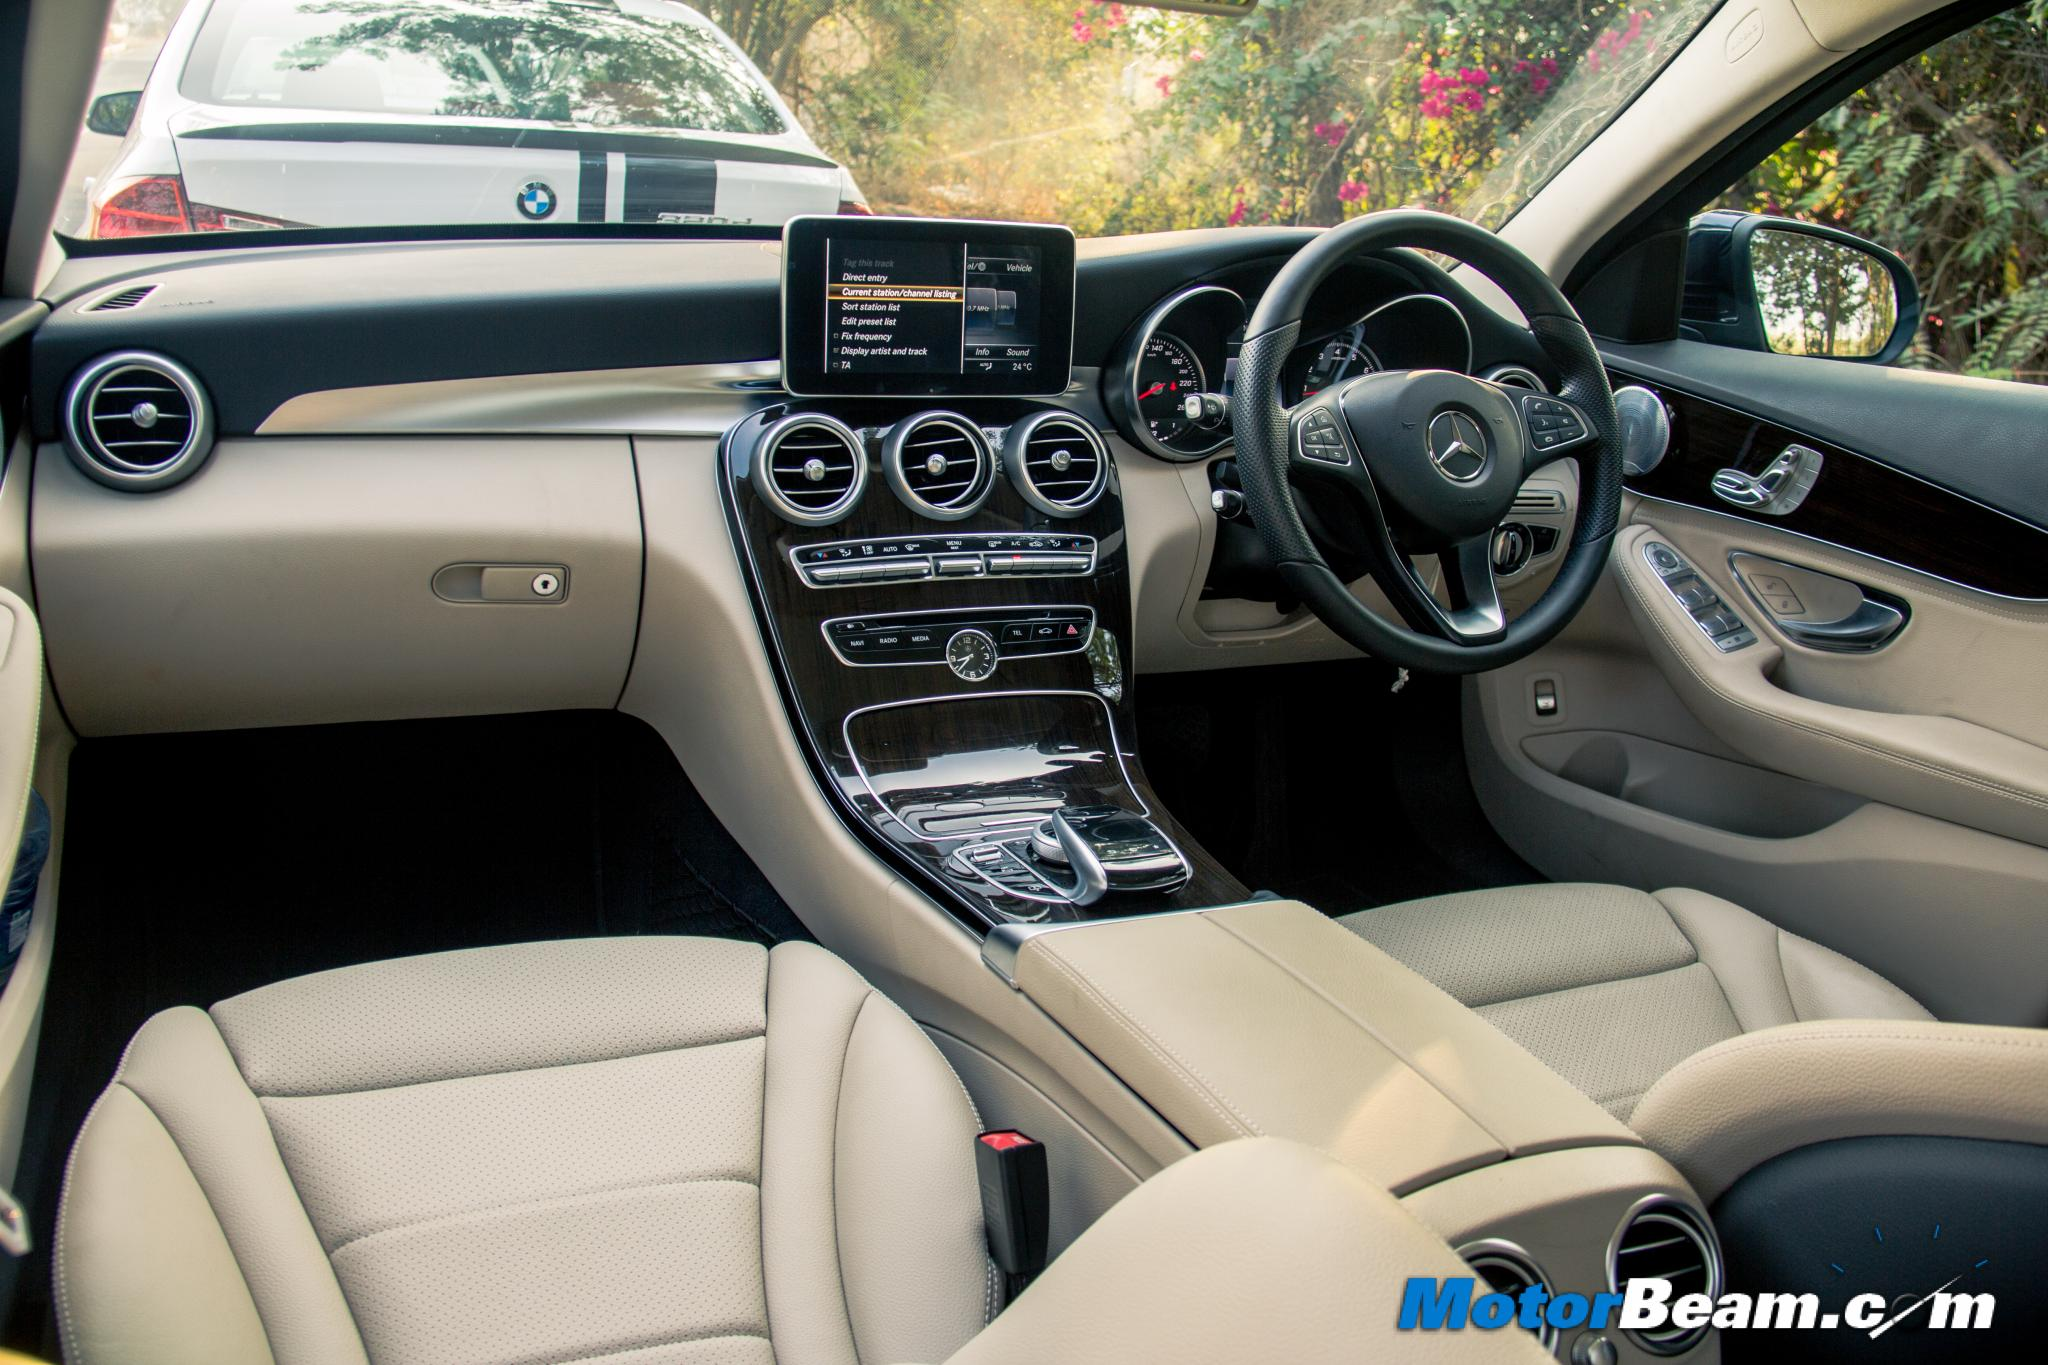 Audi A4 Interior India 2017 | Decoratingspecial.com